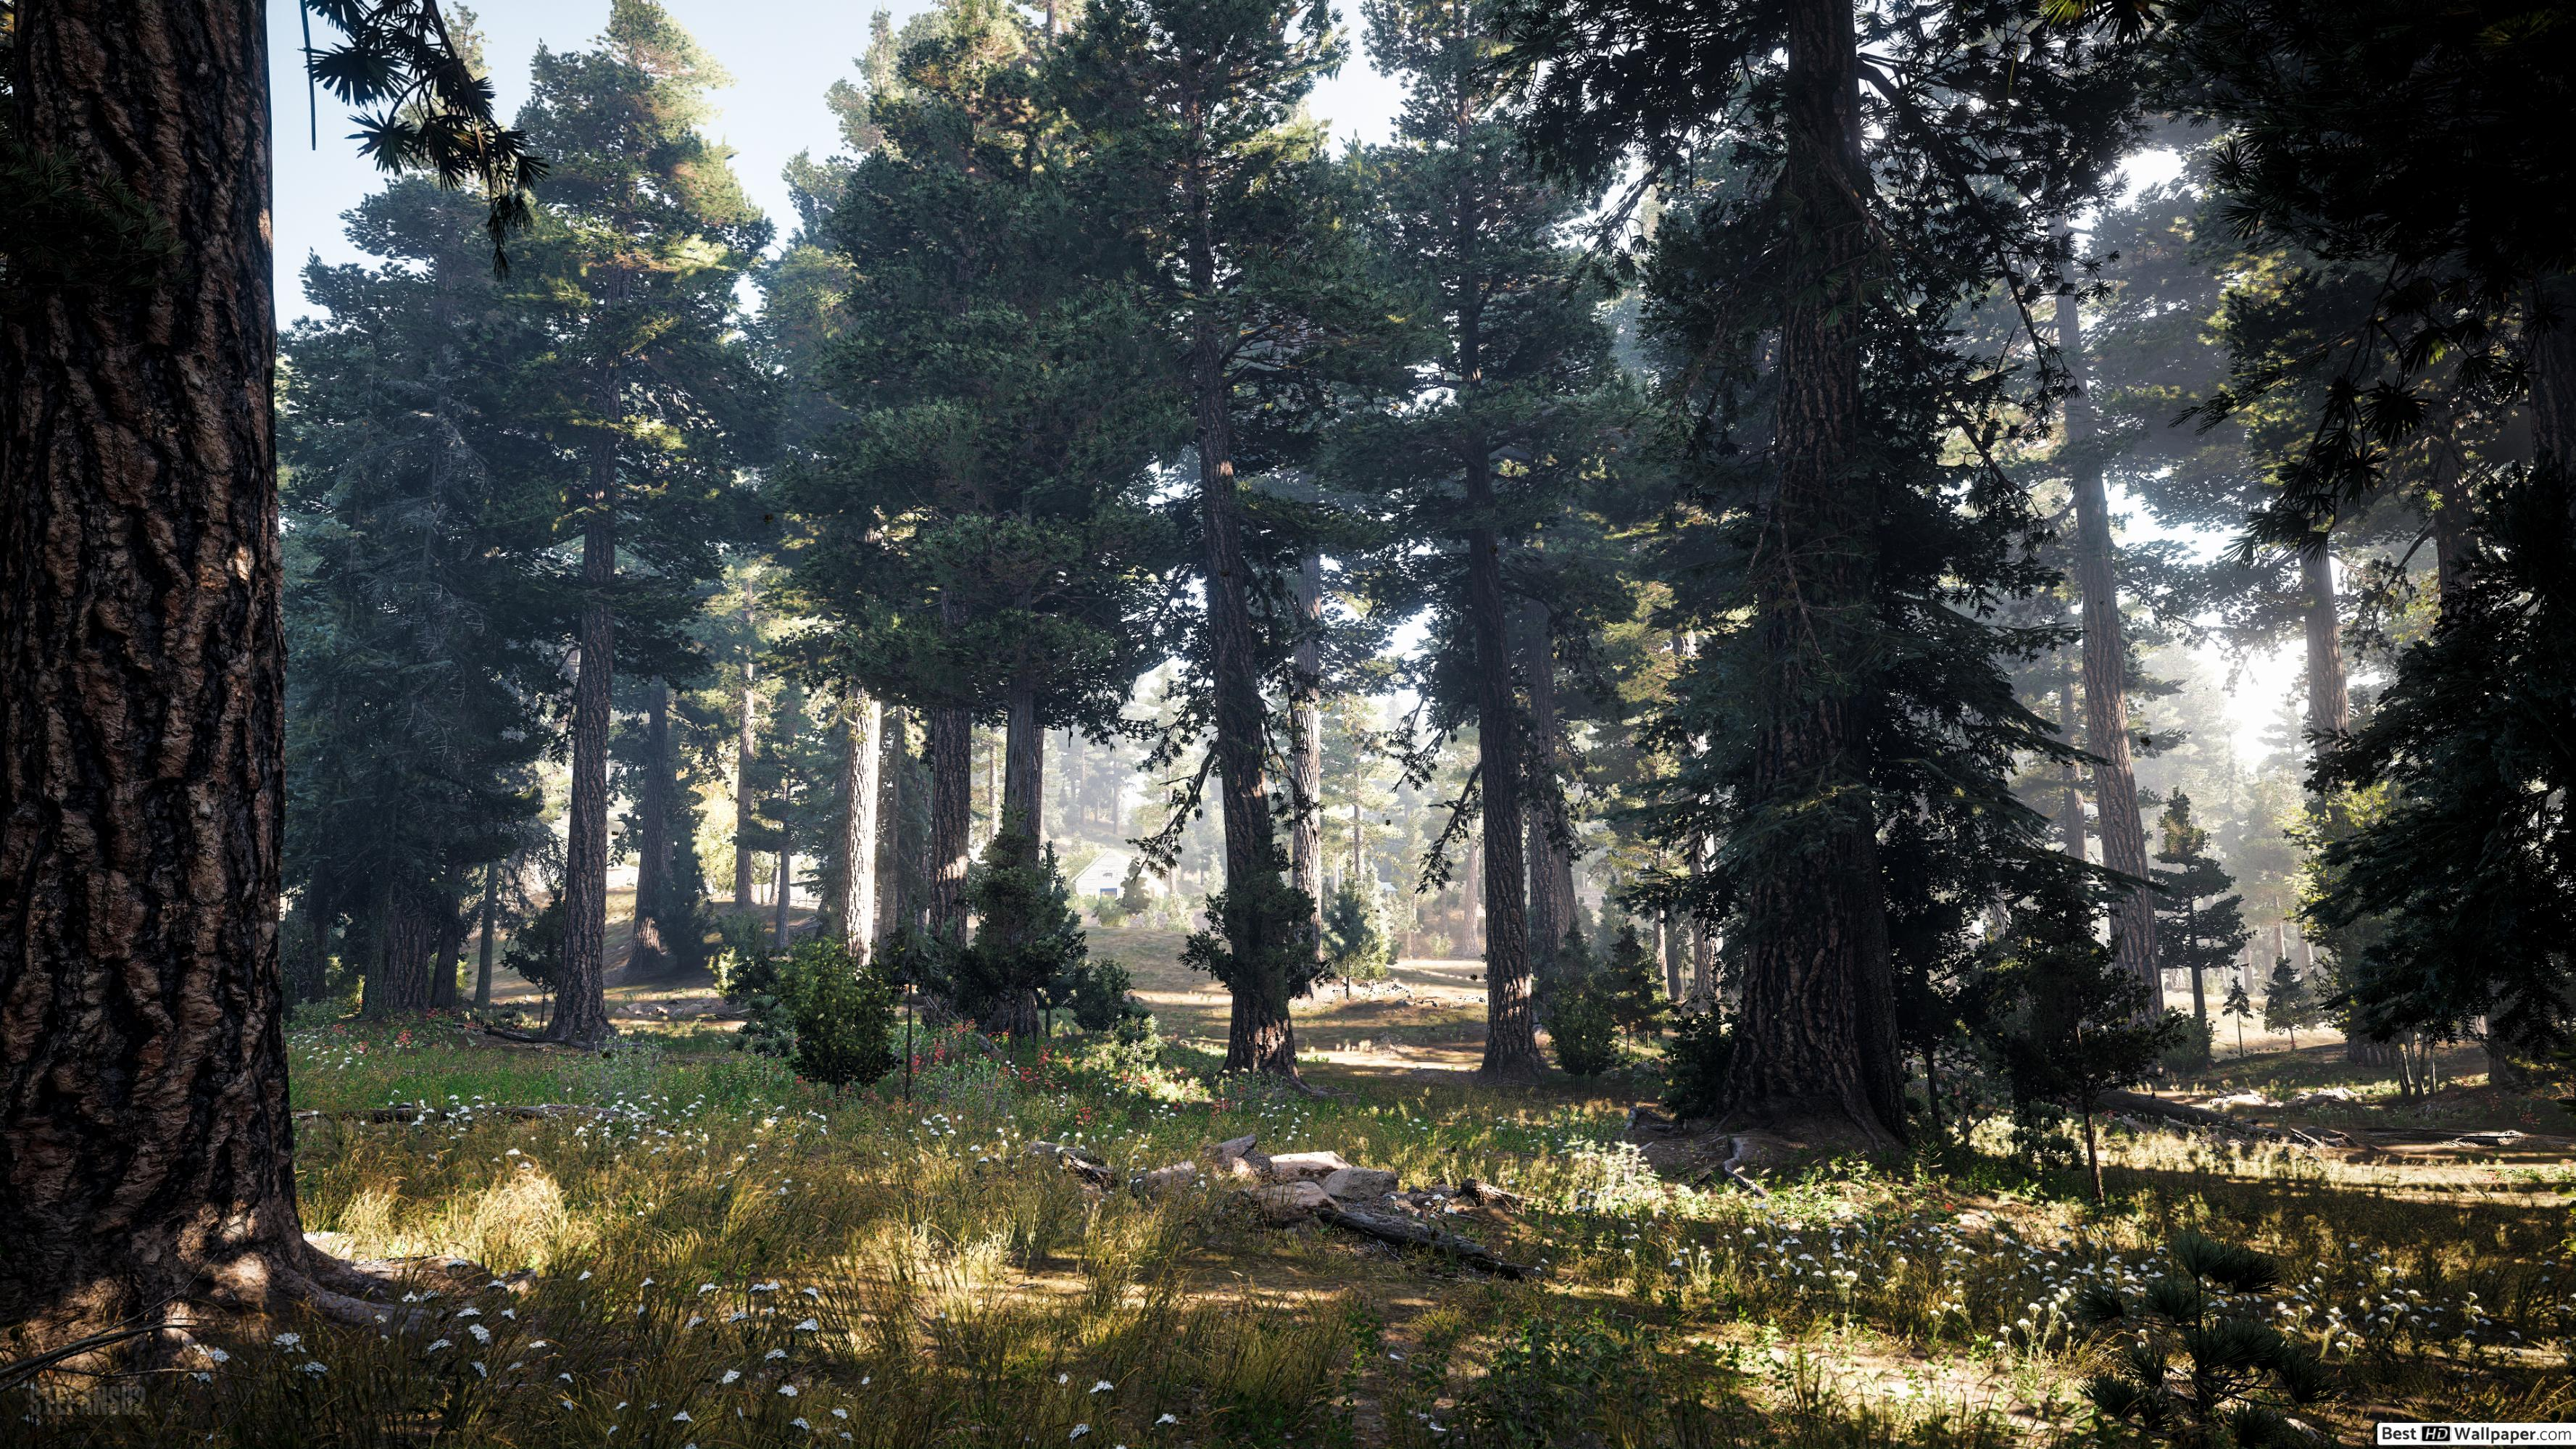 Uhd Far Cry 5 Wallpaper Forest 800135 Hd Wallpaper